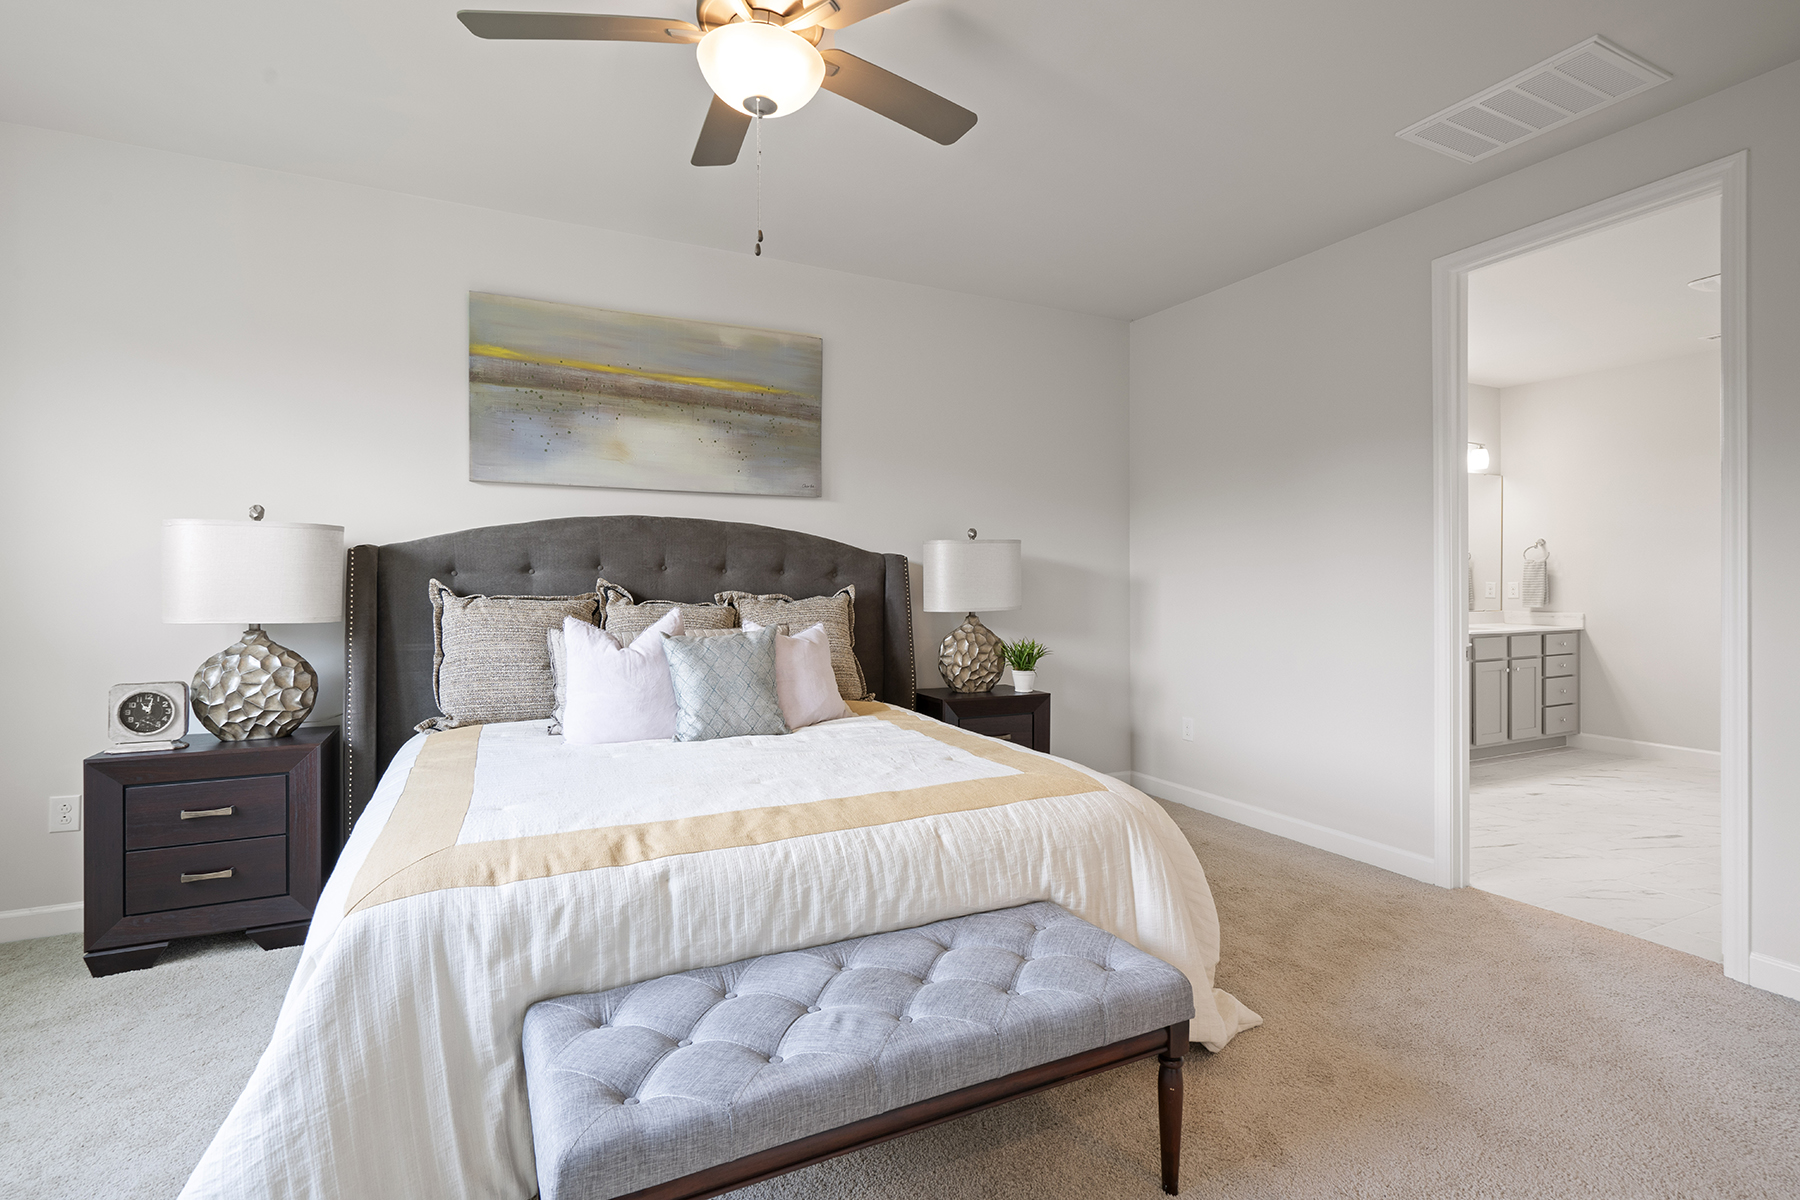 Hamilton Plan Bedroom at Fairview Park in Cary North Carolina by Mattamy Homes